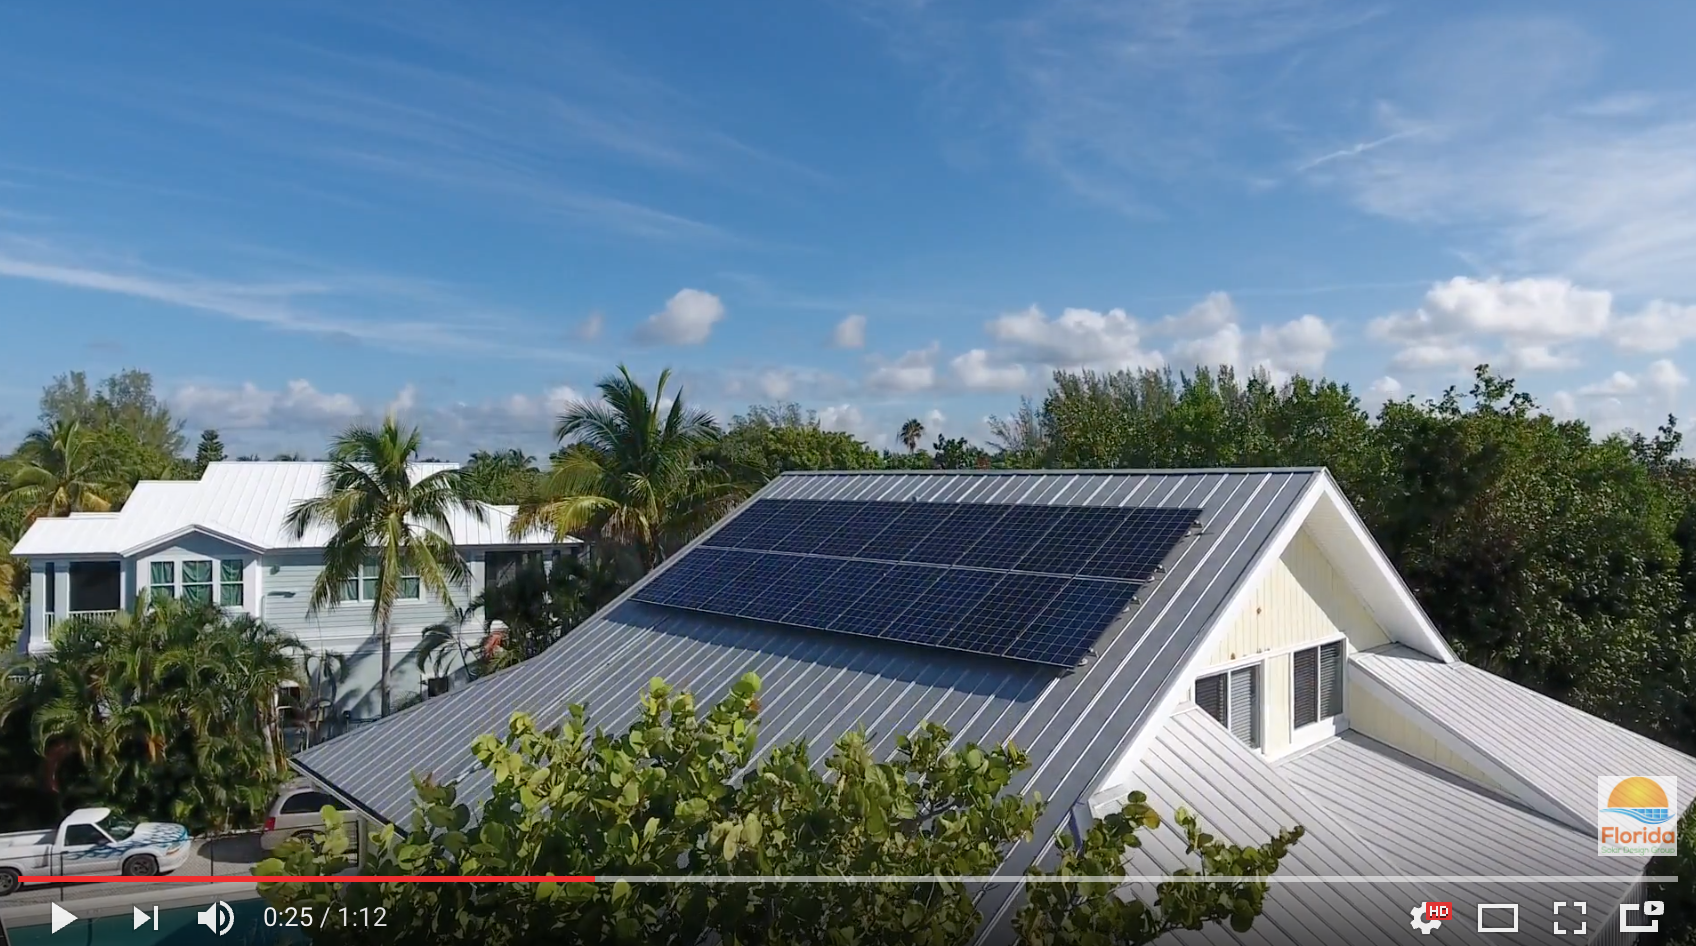 Do it yourself diy solar photovoltaic pv panels florida solar you can install solar panels yourself solutioingenieria Image collections